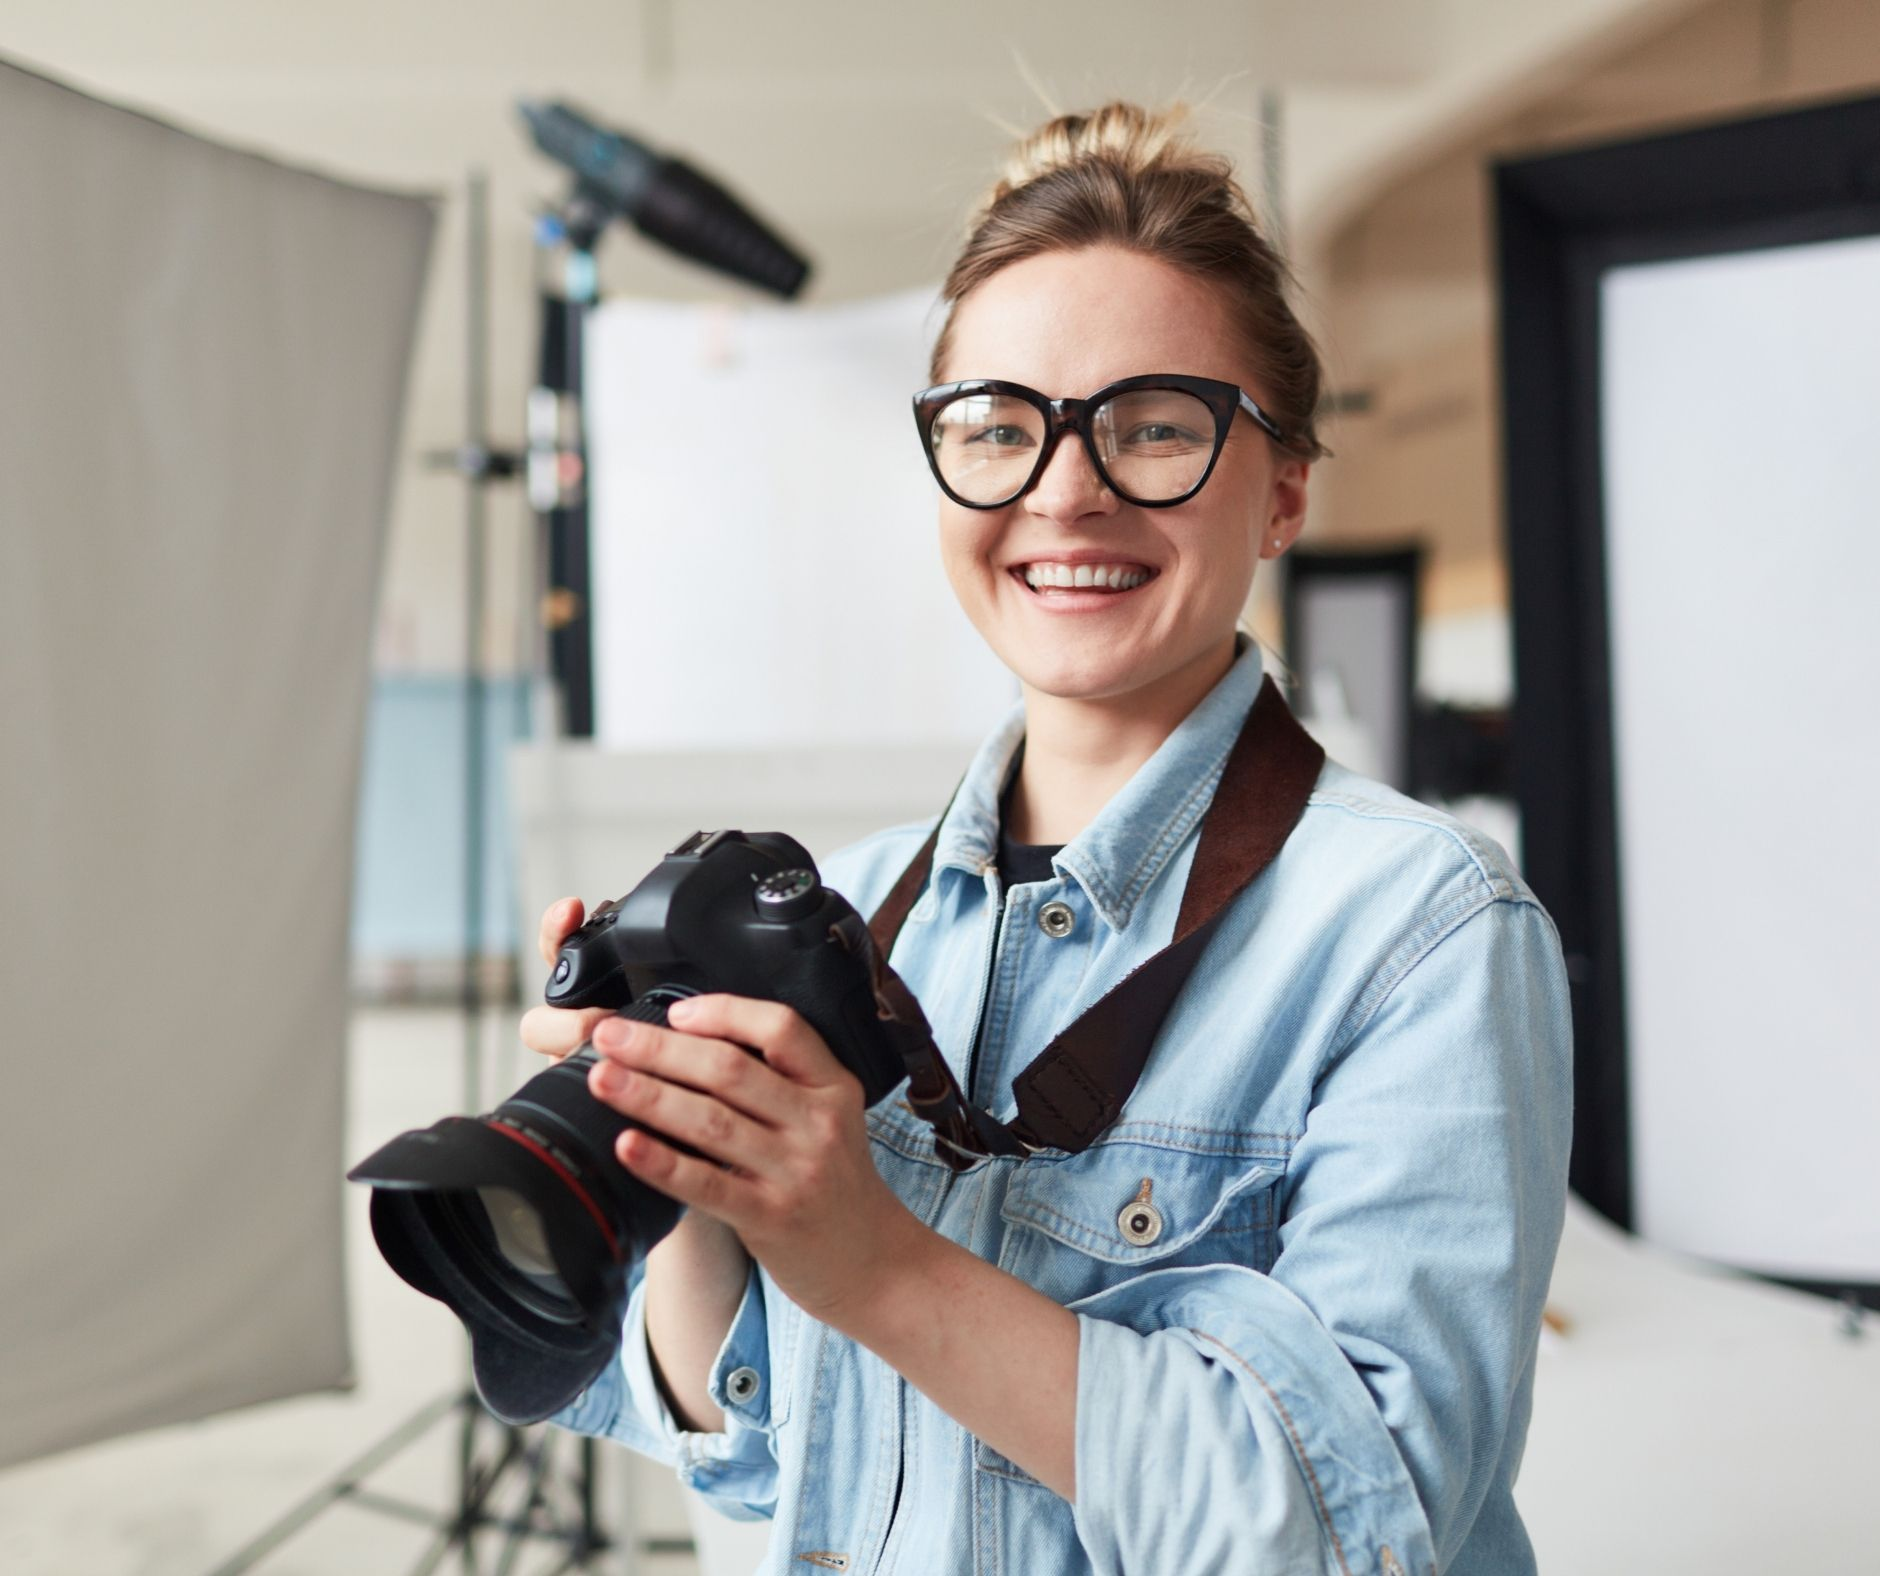 Woman holding professional camera and smiling.